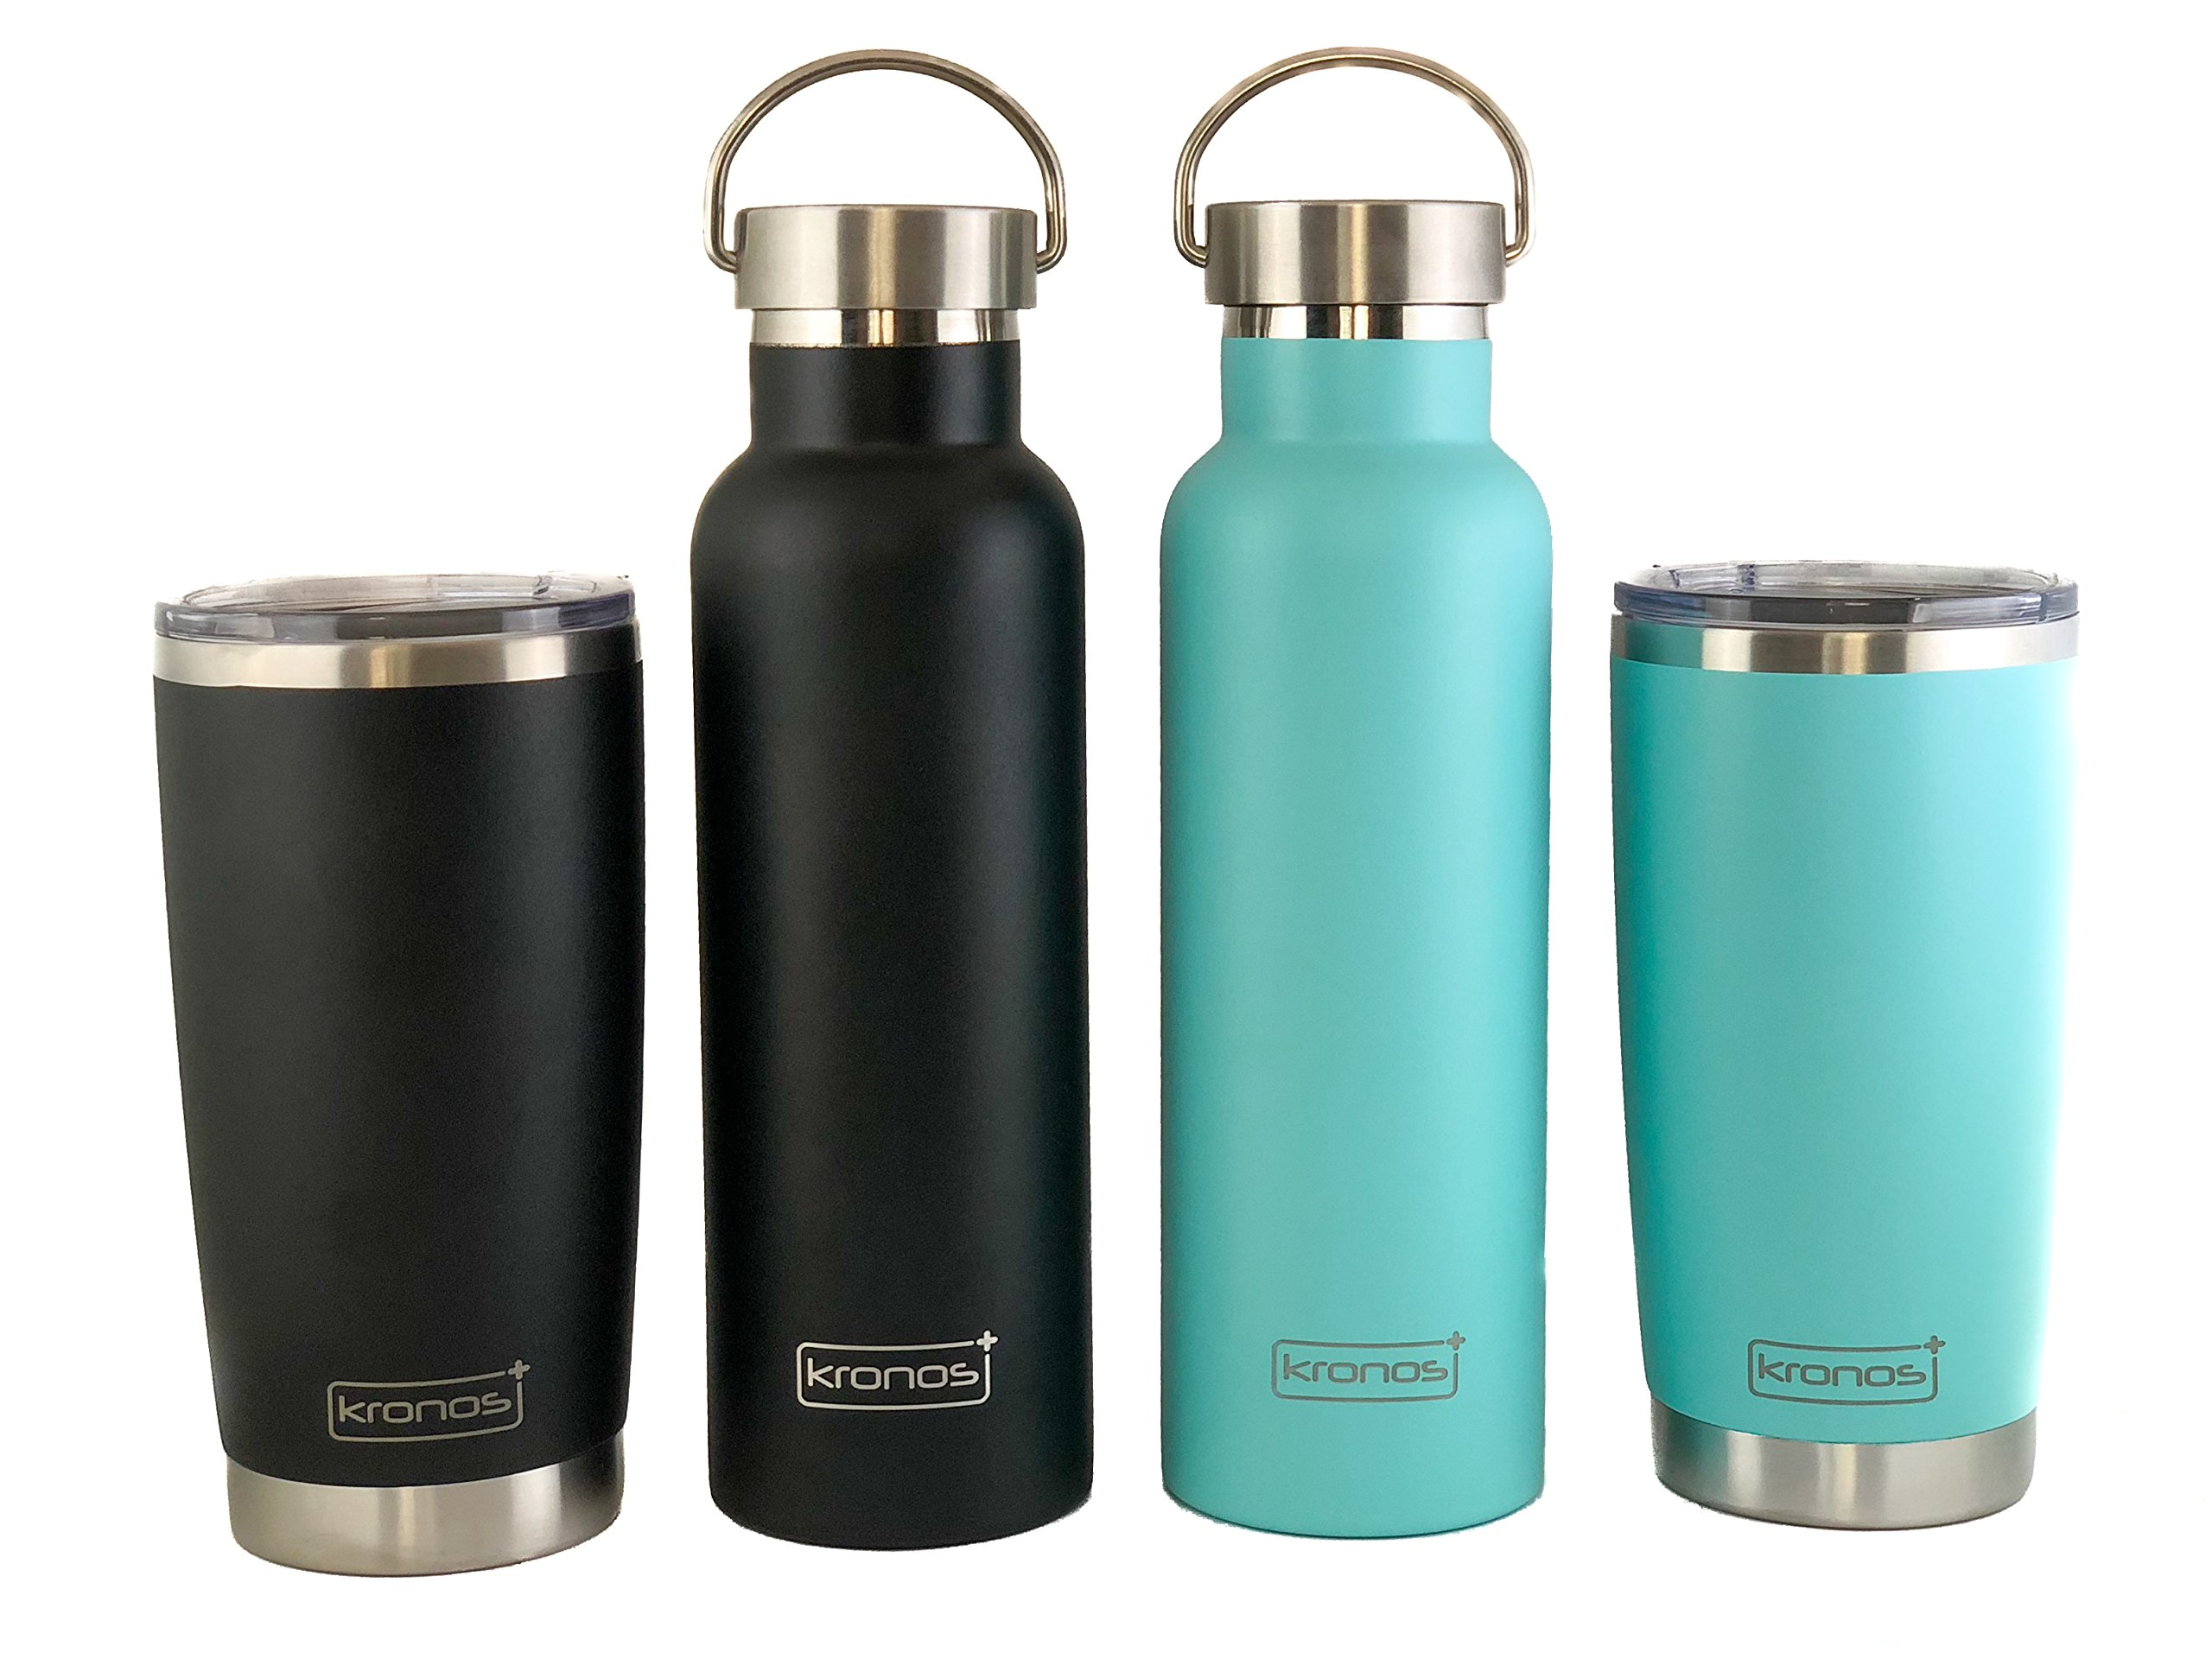 ( SEA FOAM ) Dishwasher Safe 20 oz Vacuum Insulated Thermos with High Quality Matte Finish - Coffee Mug Tumbler by Kronos + (Image #8)